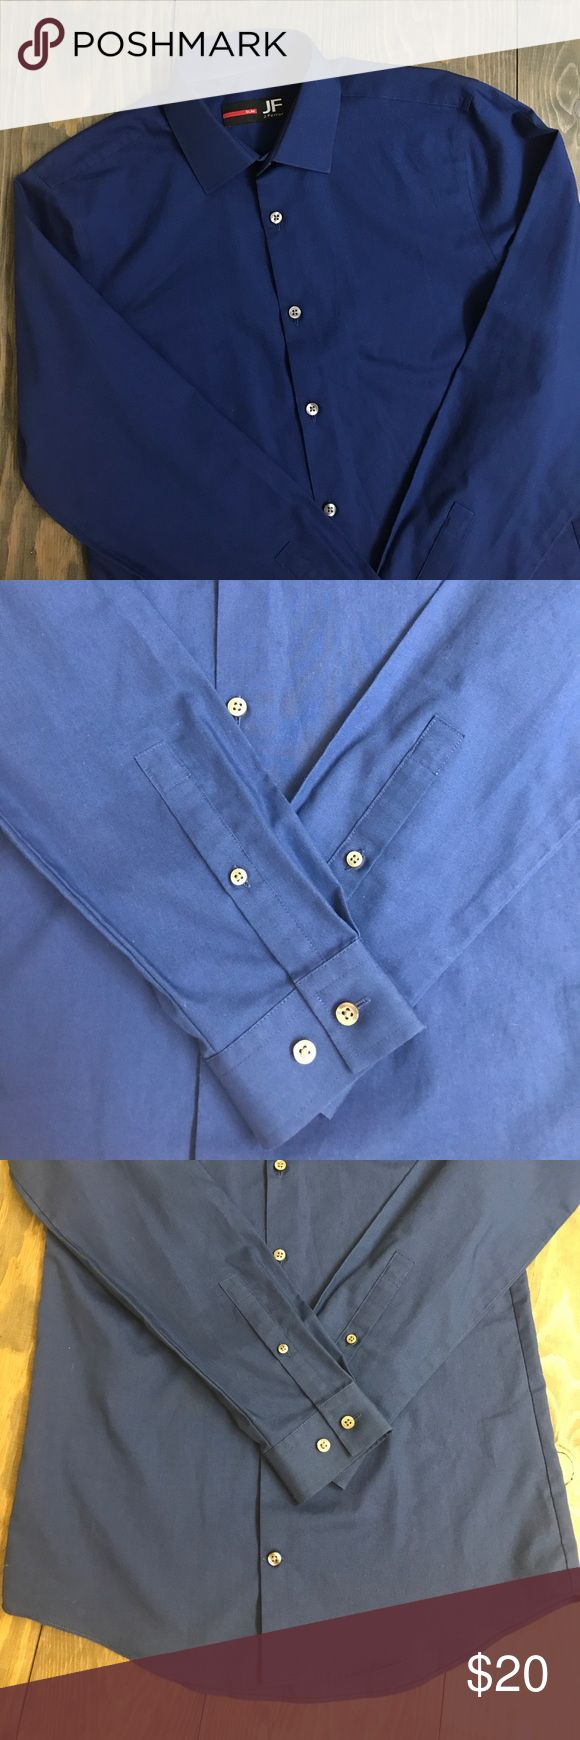 Men's Slim Fit Dress Shirt Men's slim fit shirt only worn once for prom. 55% cotton 45% polyester. Beautiful blue color! Includes extra buttons. Non-smoking non-pet home. Purchased from Macy's. J. Ferrari Shirts Dress Shirts